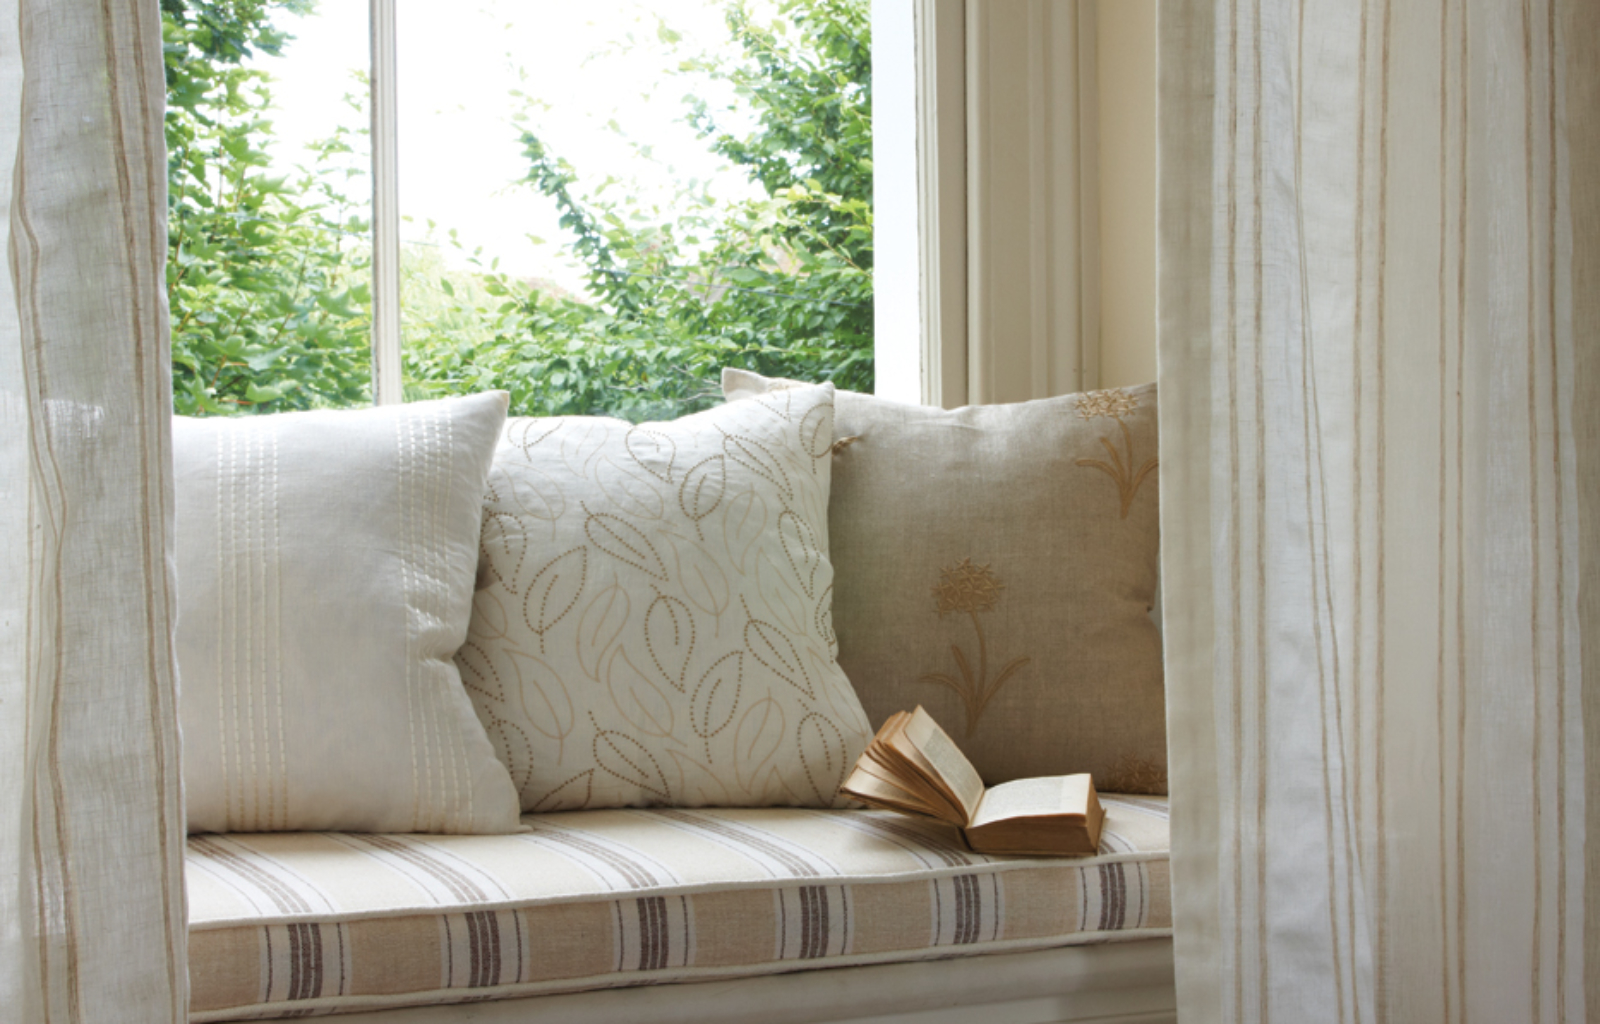 Natural James Hare Cushions Voiles fabrics neutral